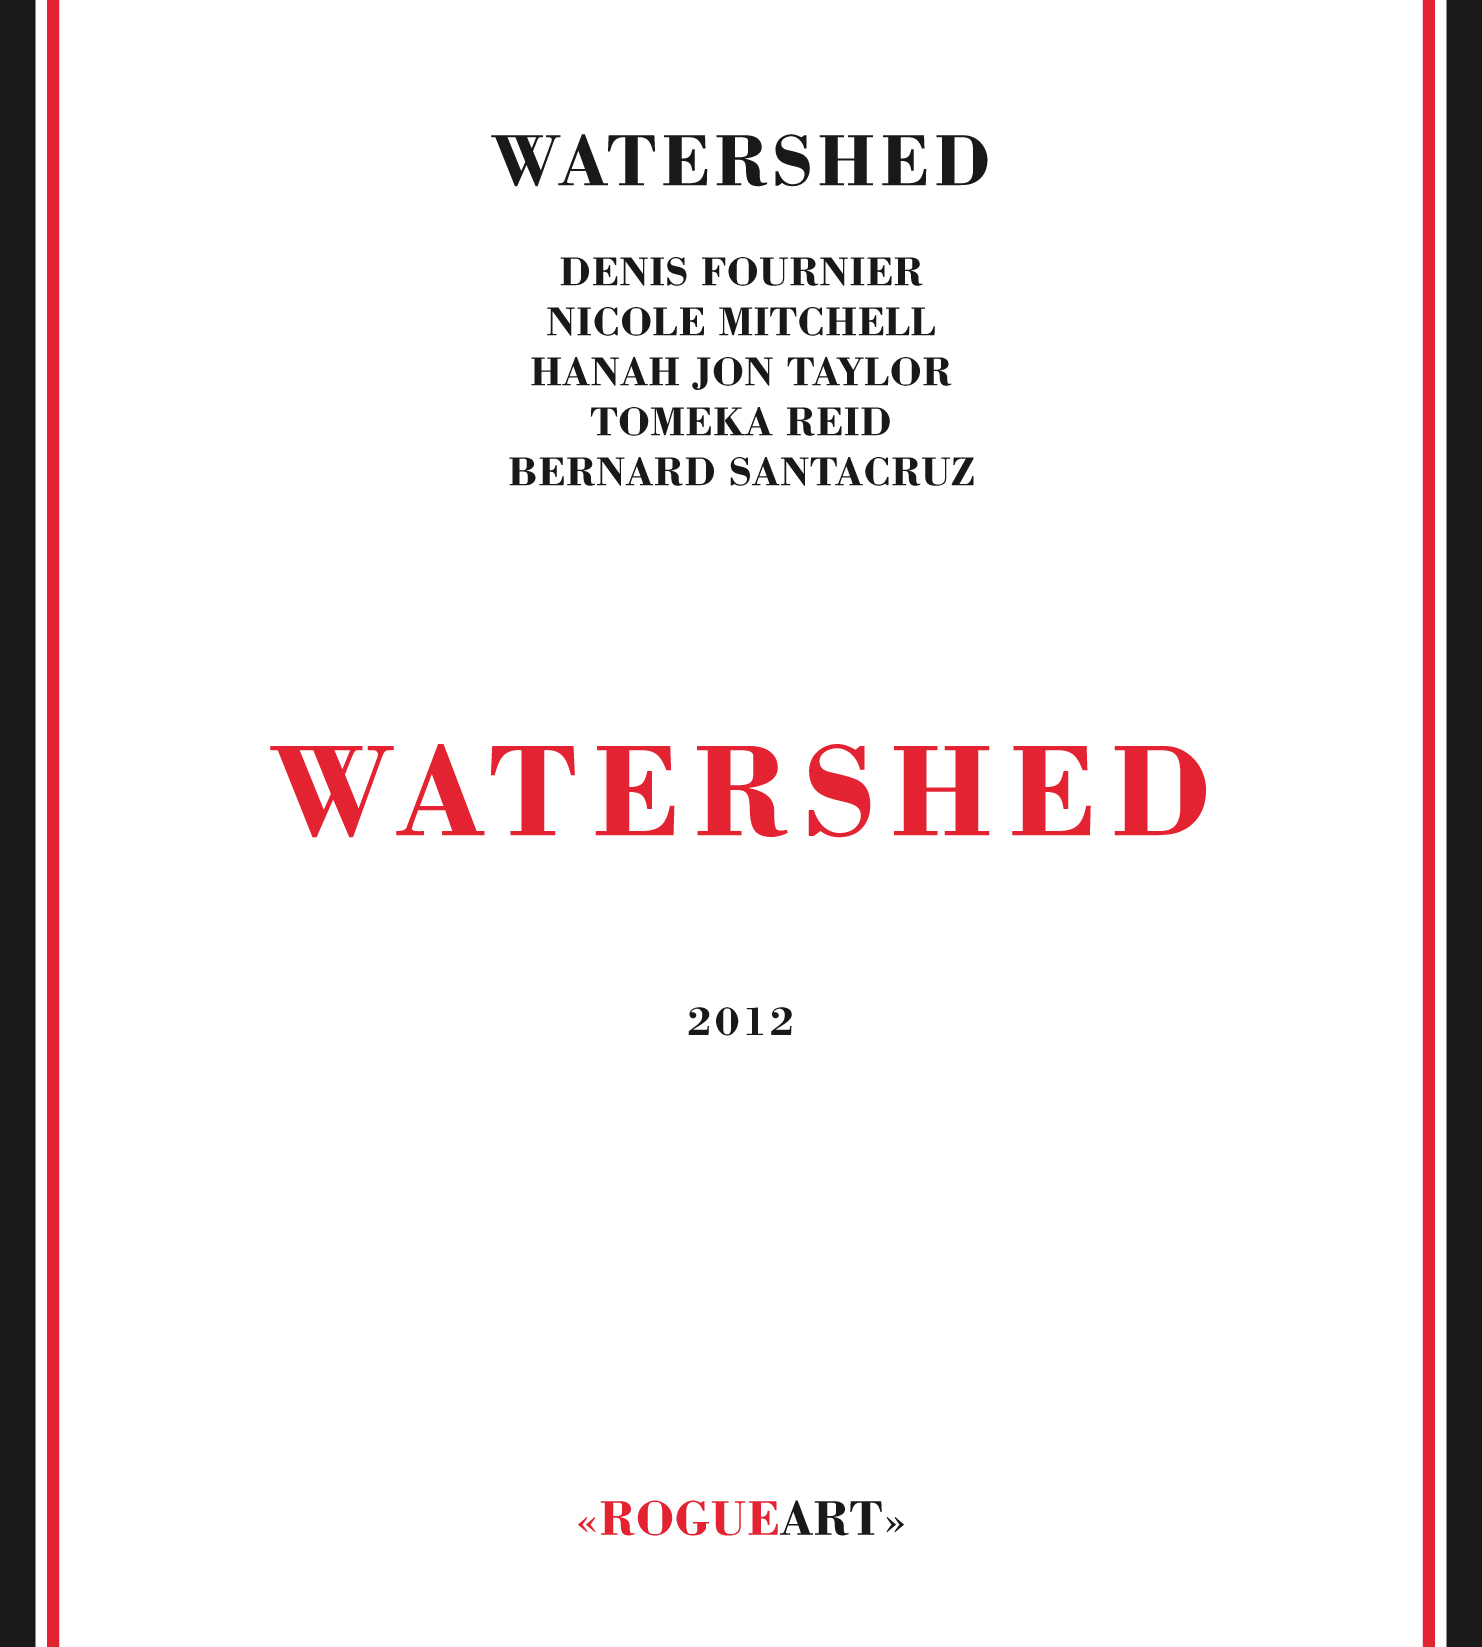 Front cover of the album WATERSHED